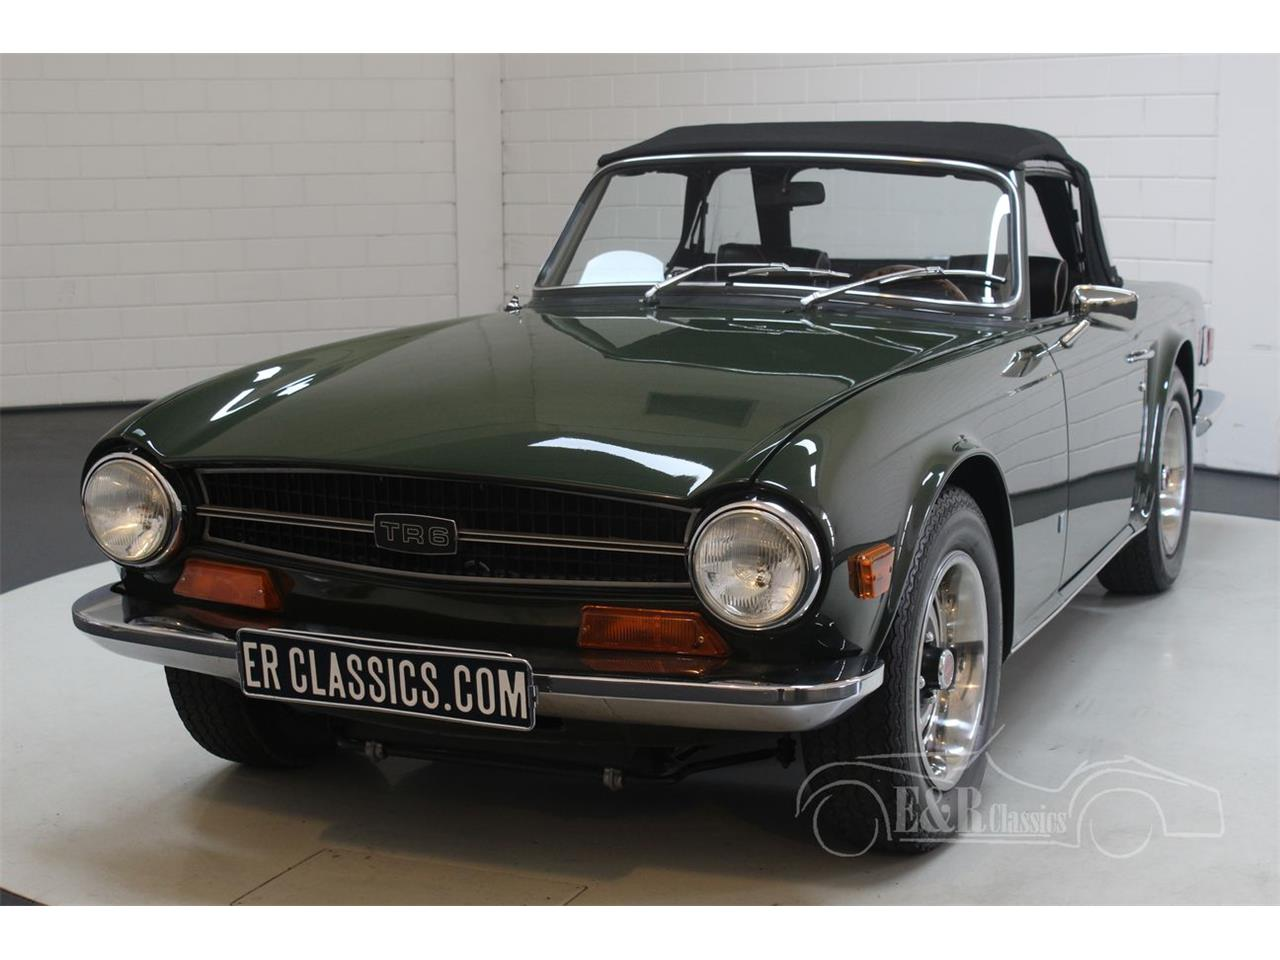 Large Picture of '69 Triumph TR6 - $33,700.00 Offered by E & R Classics - PWOE